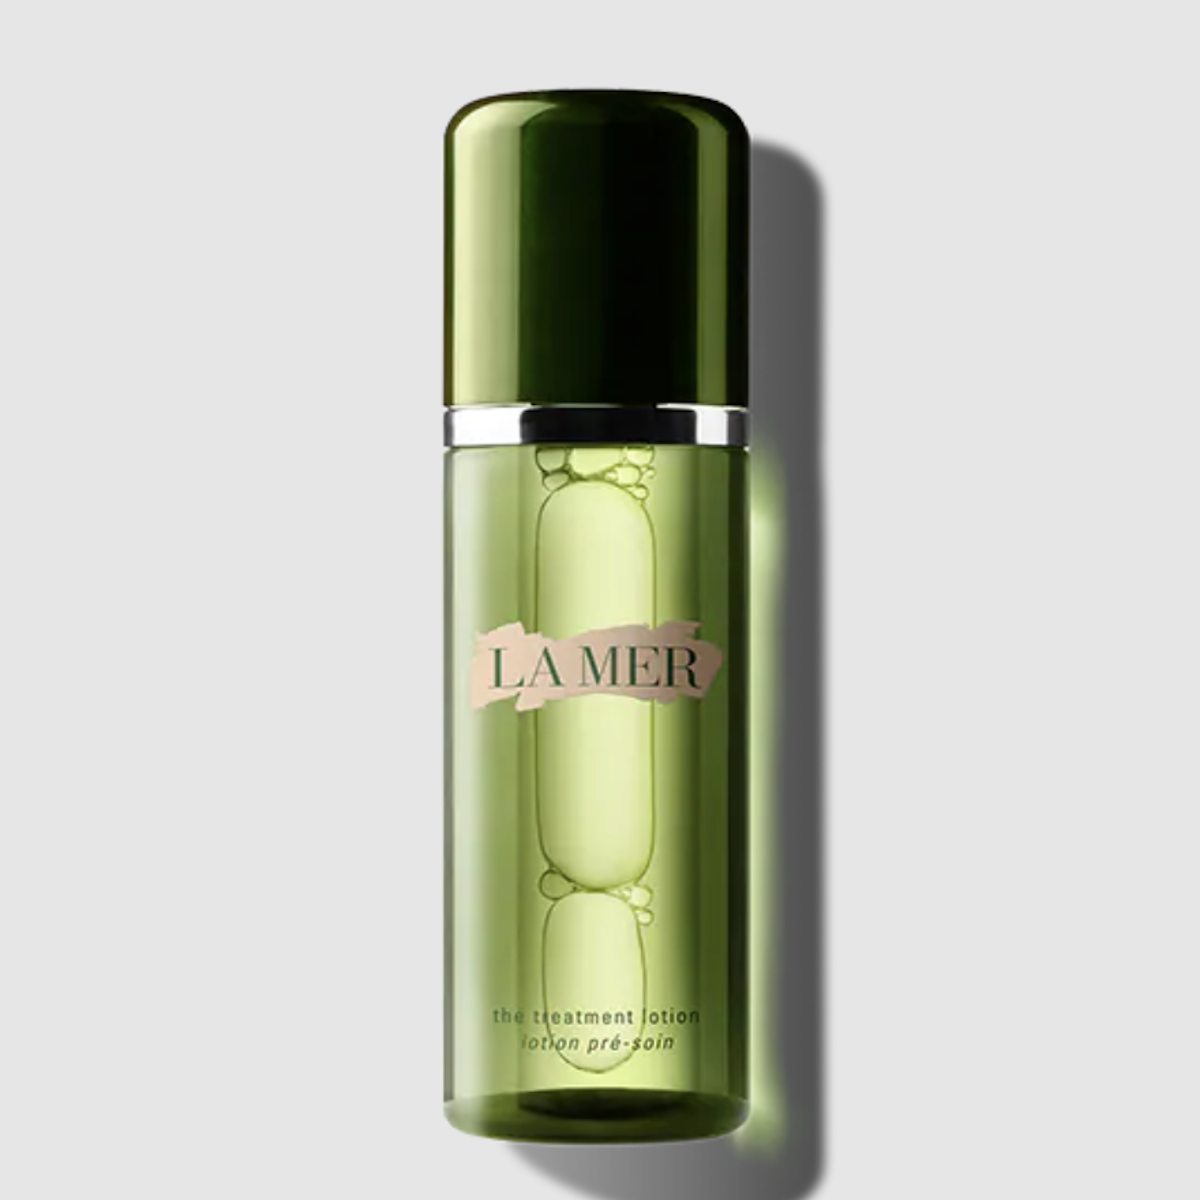 La Mer The Treatment Lotion green transparent bottle